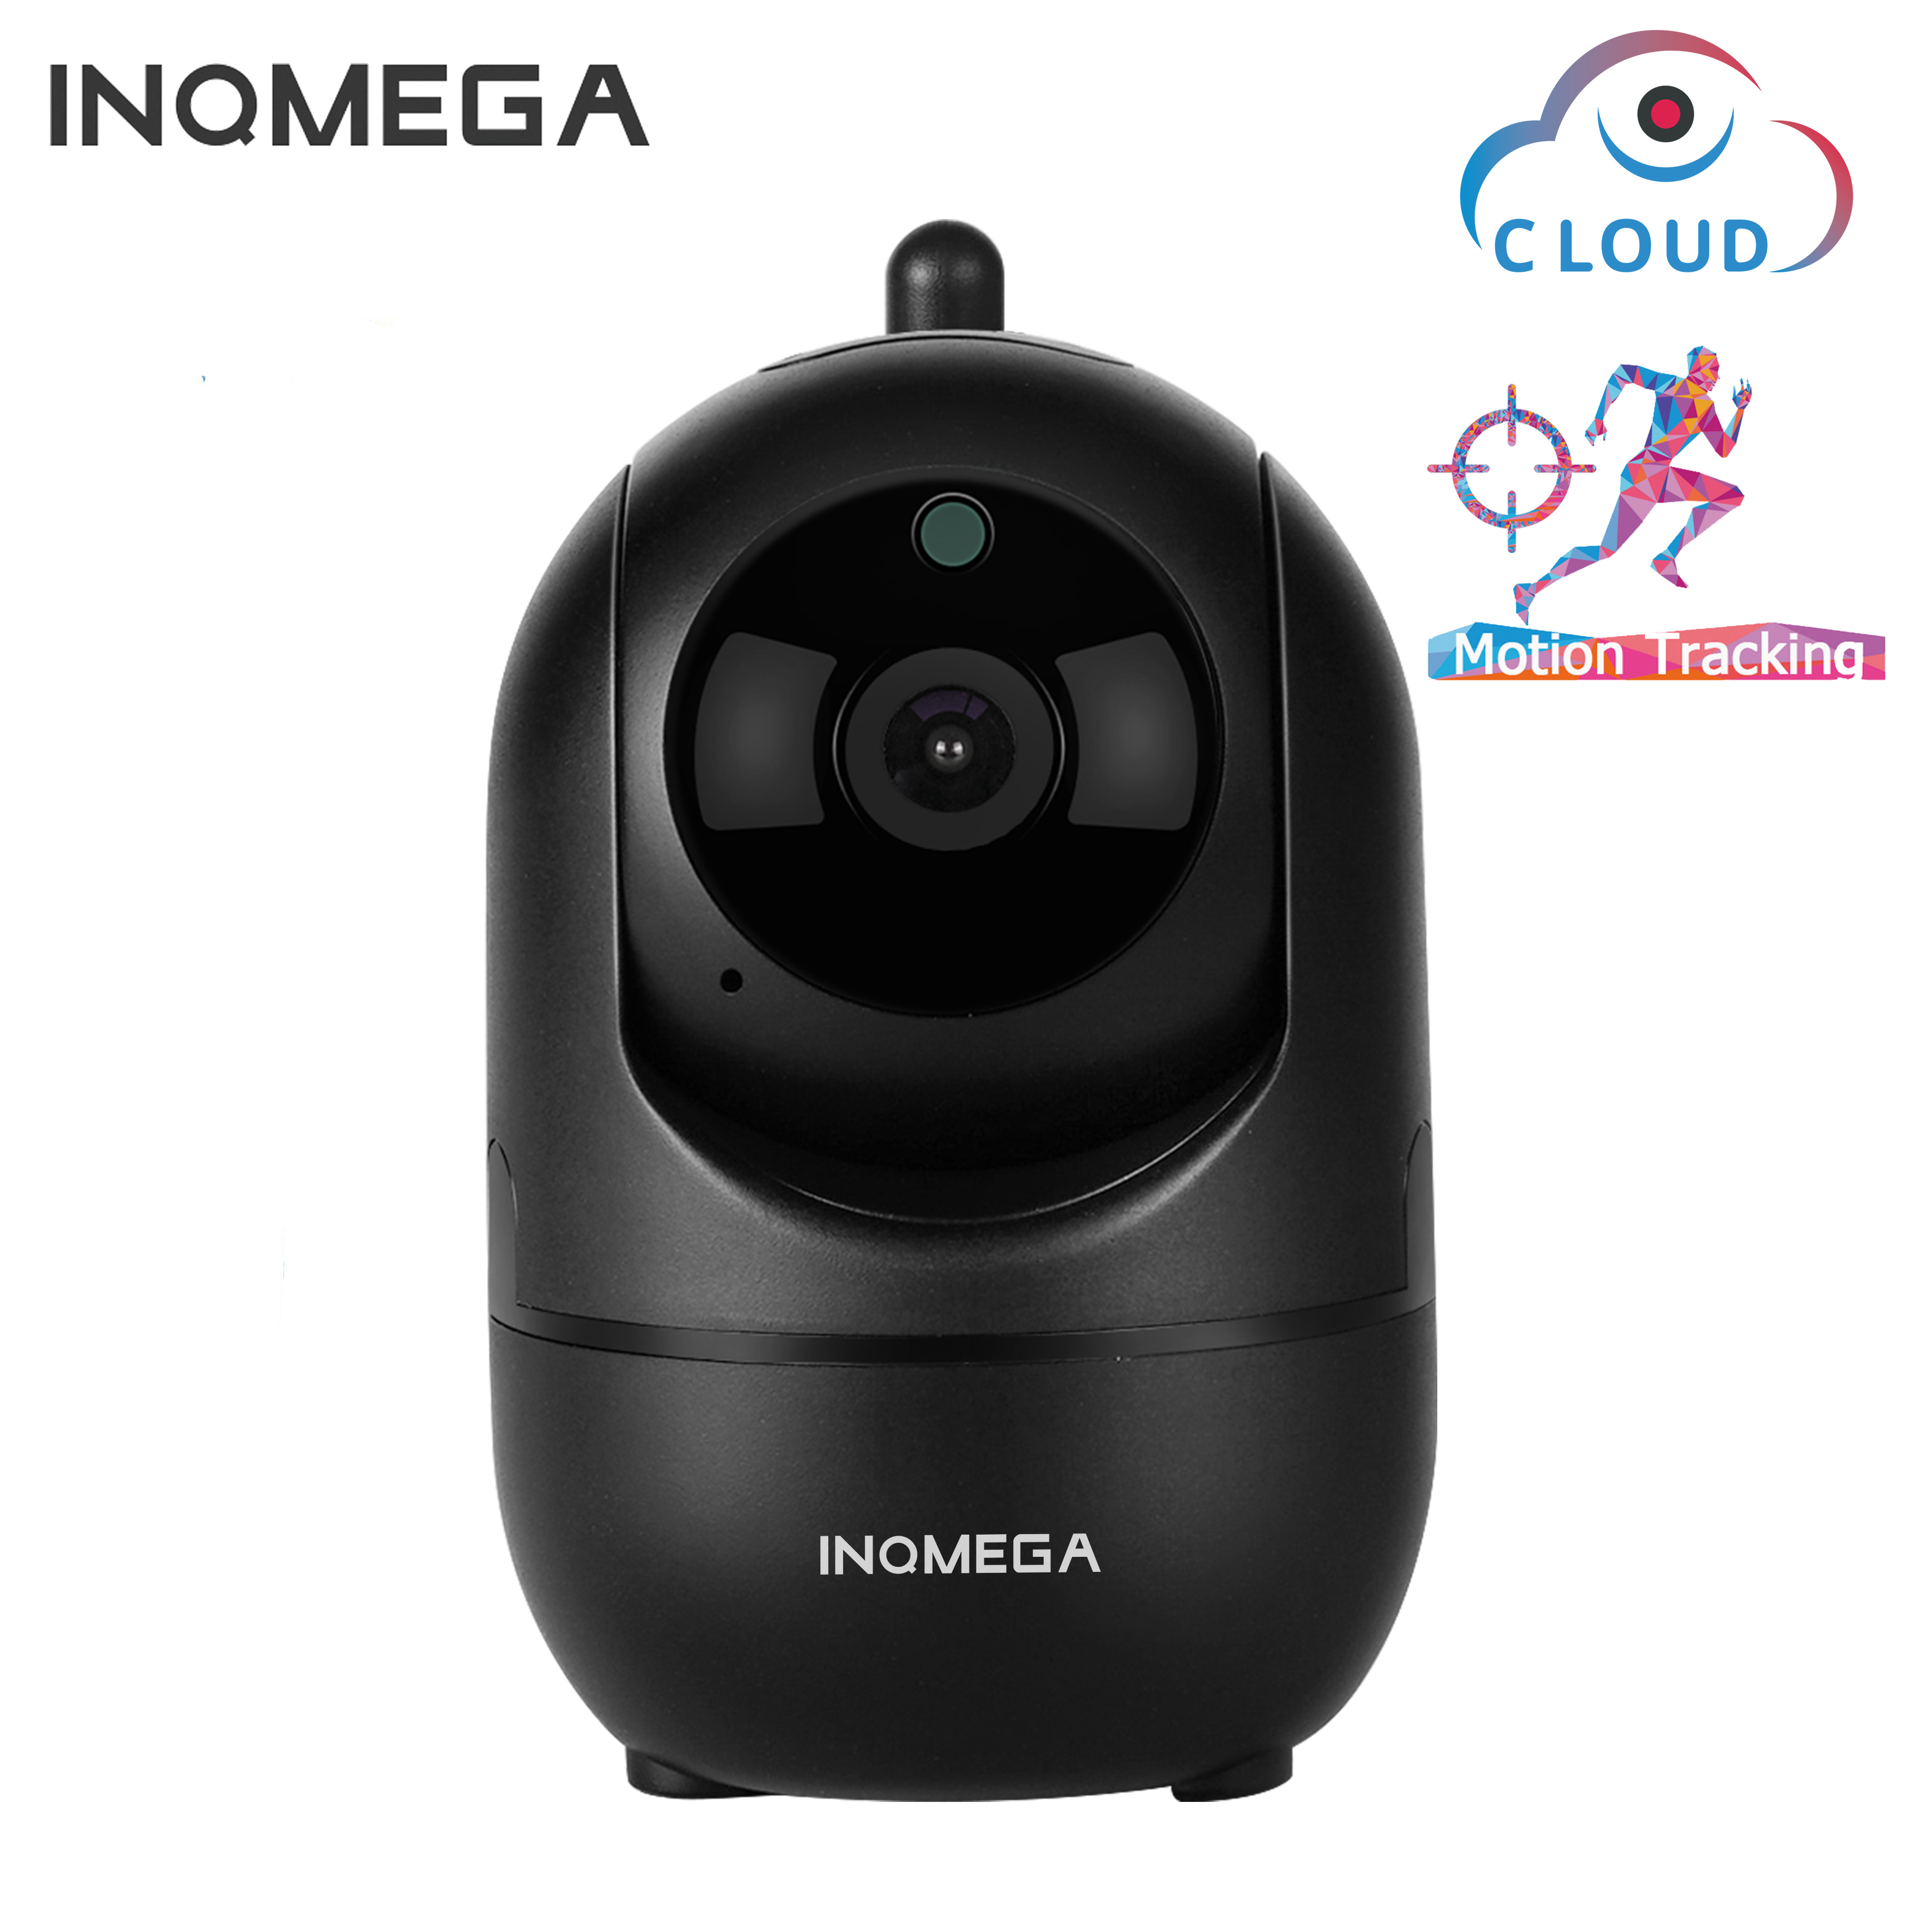 INQMEGA Ip-Camera Cctv-Network-Wifi Auto-Tracking-Of Intelligent Surveillance Cloud Home-Security